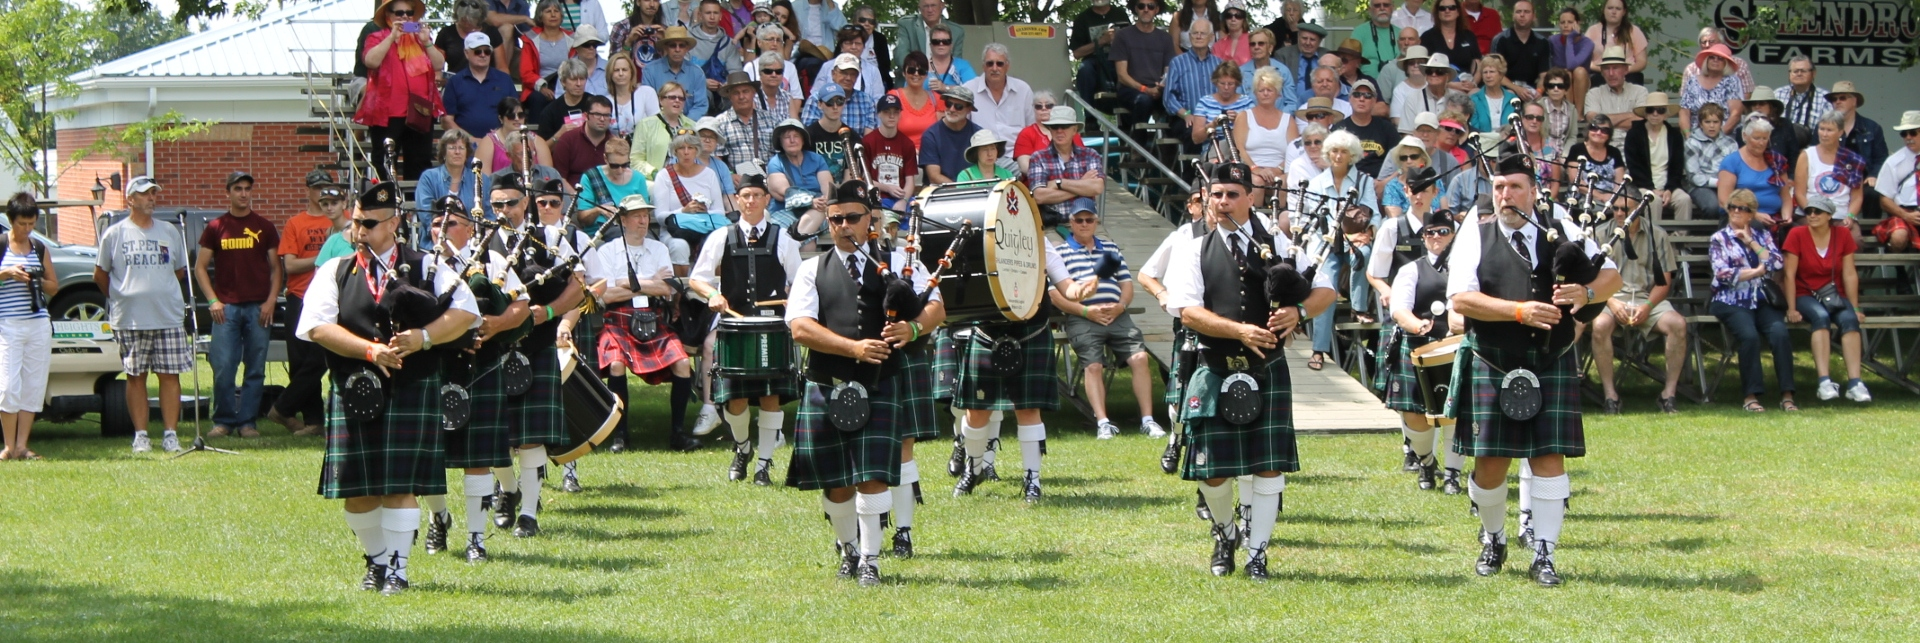 Picture of Pipe Band playing during the Glengarry Highland Games